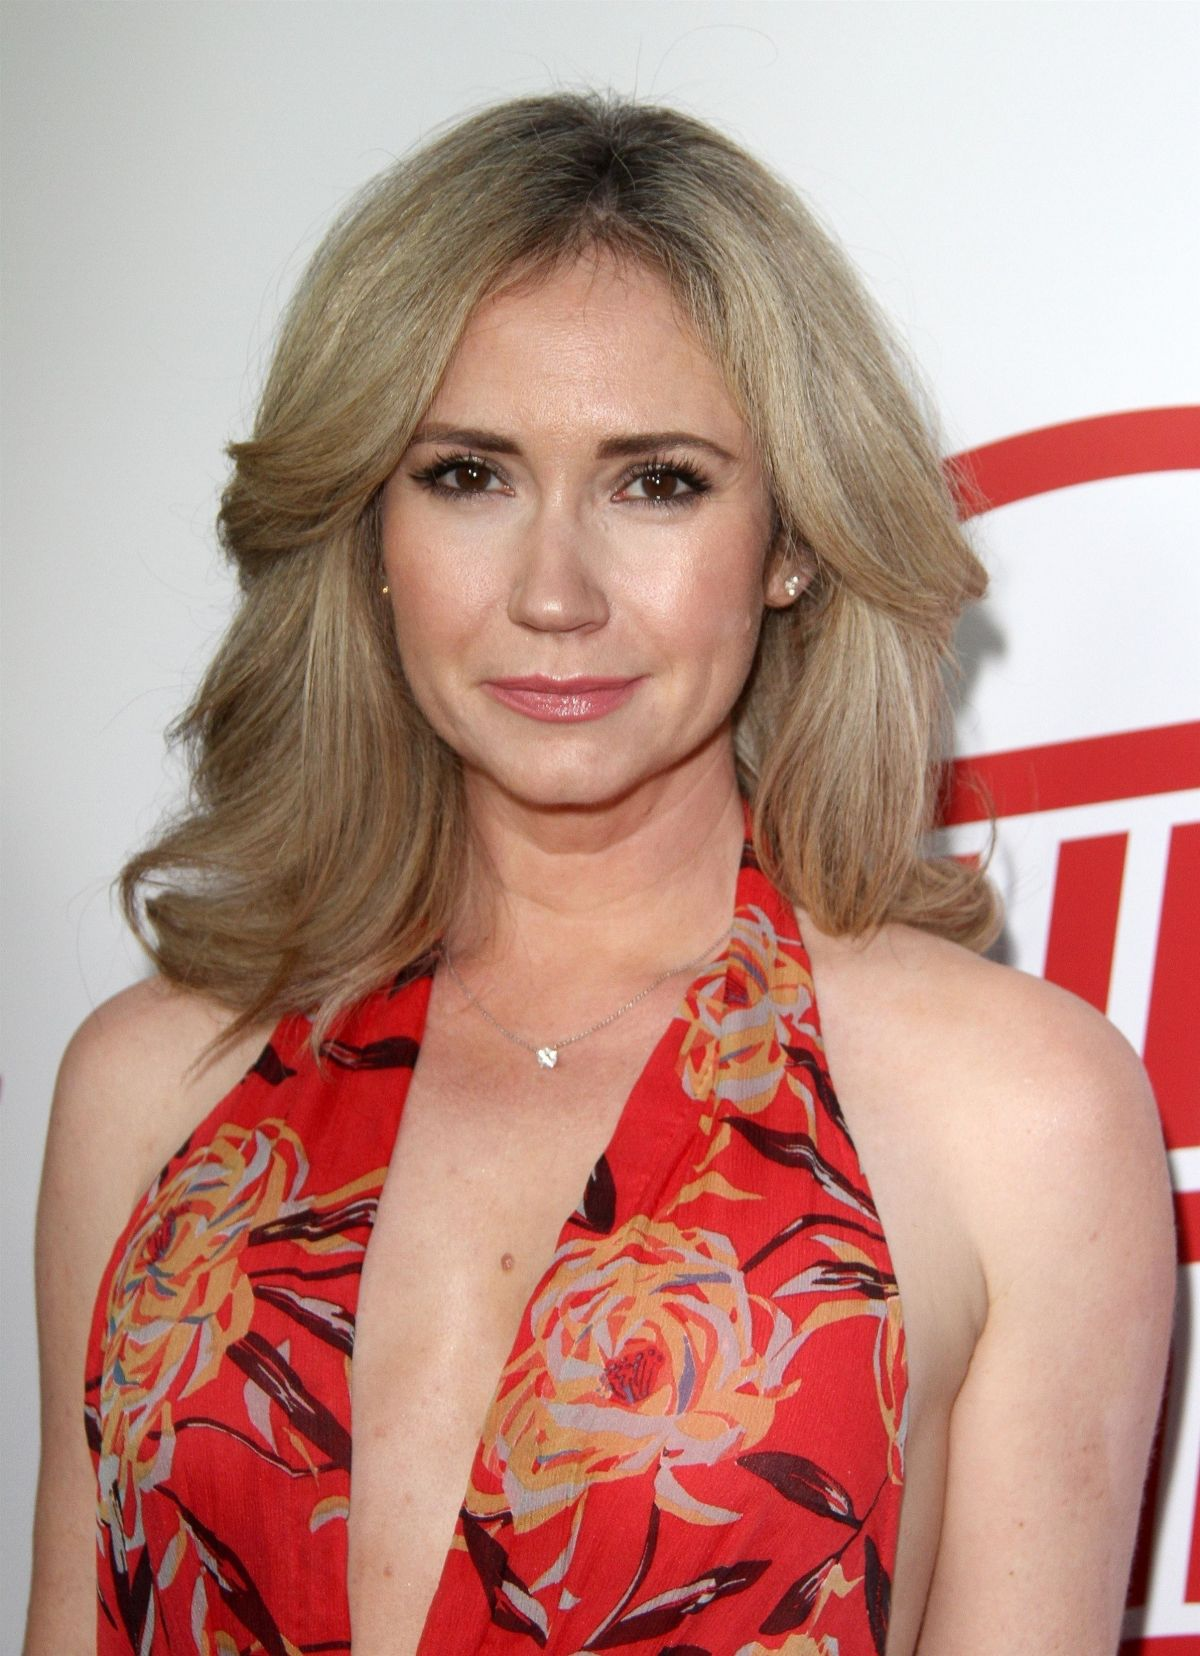 Ashley Jones born September 3, 1976 (age 42)